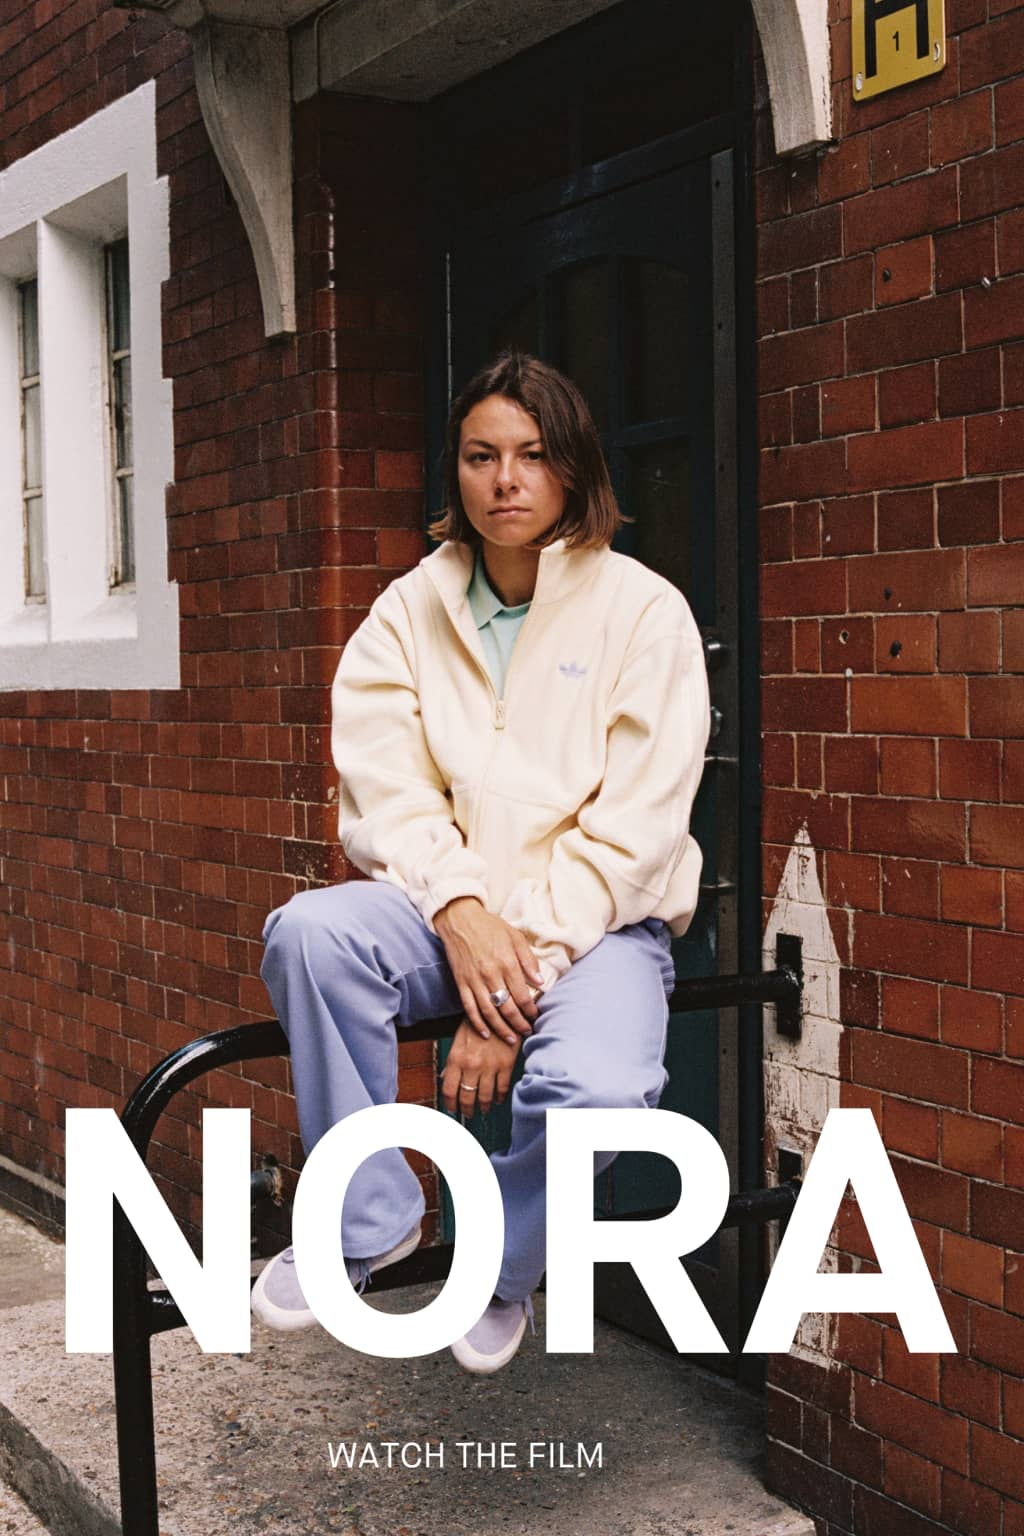 Exclusive Nora Vasconcellos Film and her adidas Unisex Collection Preview